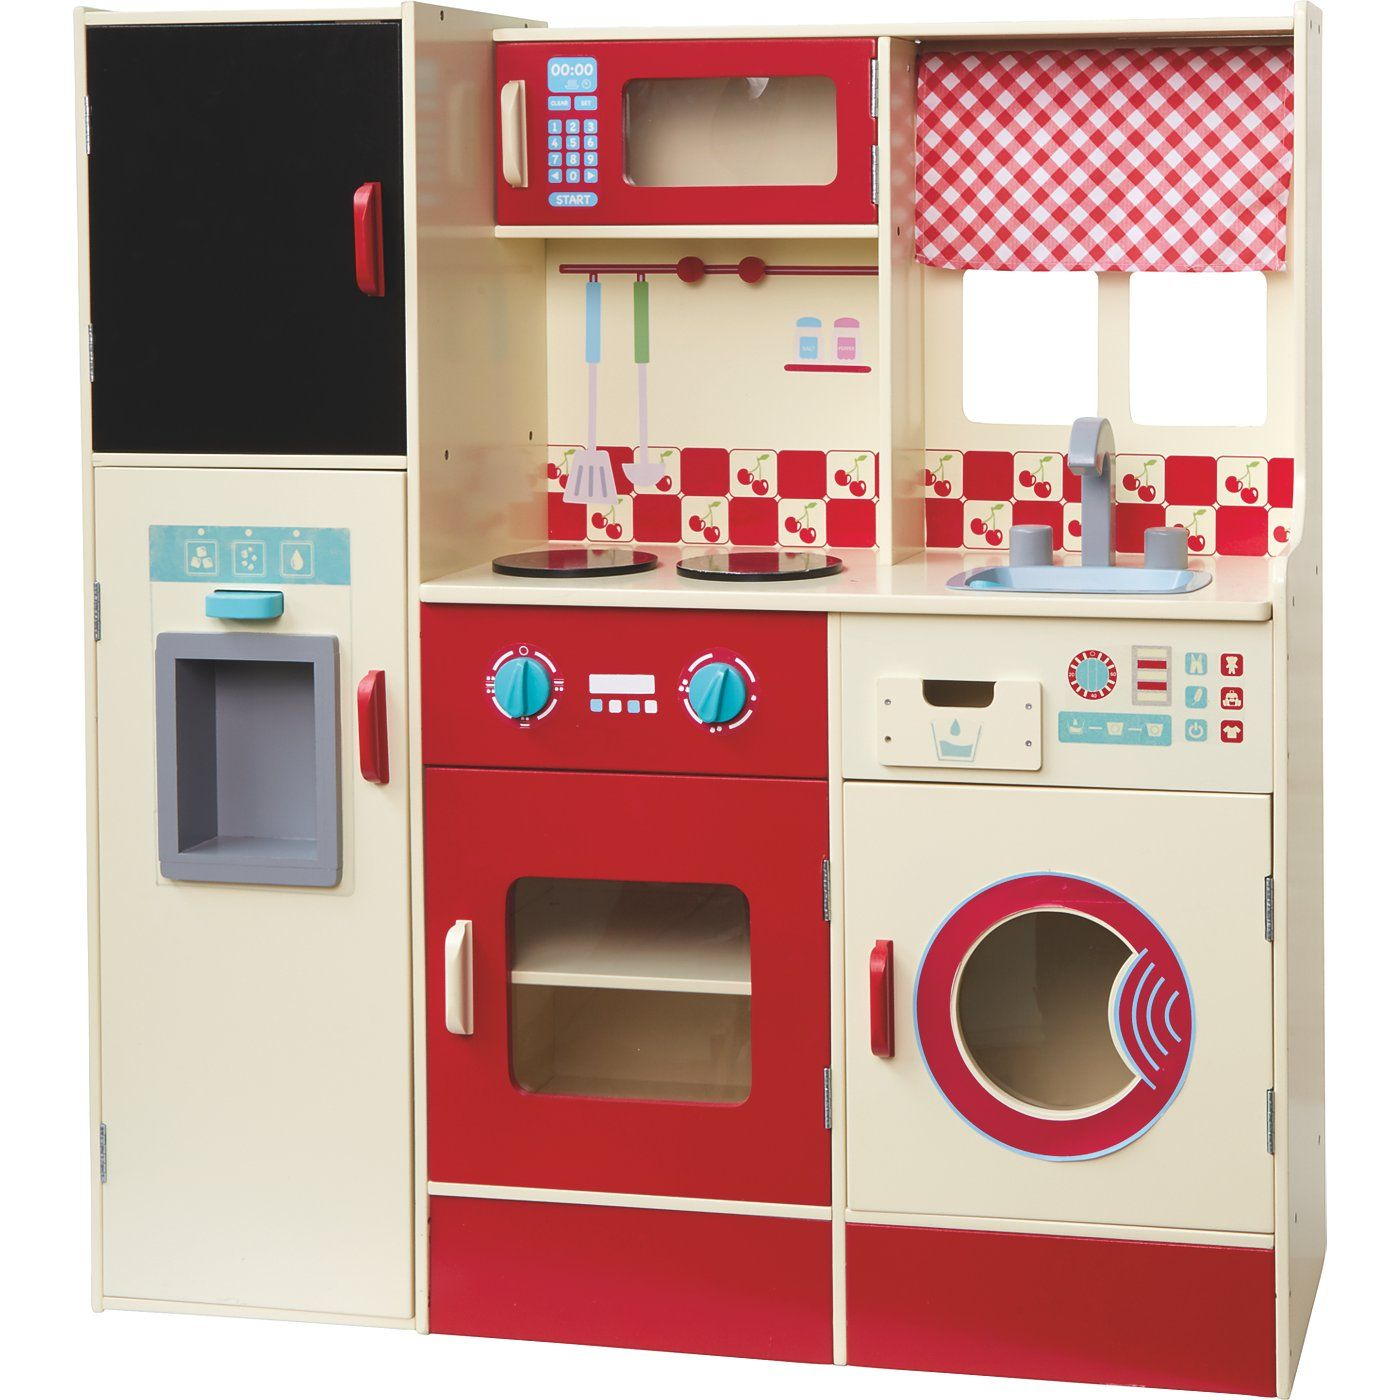 Uncategorized Asda Kitchen Appliances george home wooden coffee shop kitchen and laundry birthday ideas